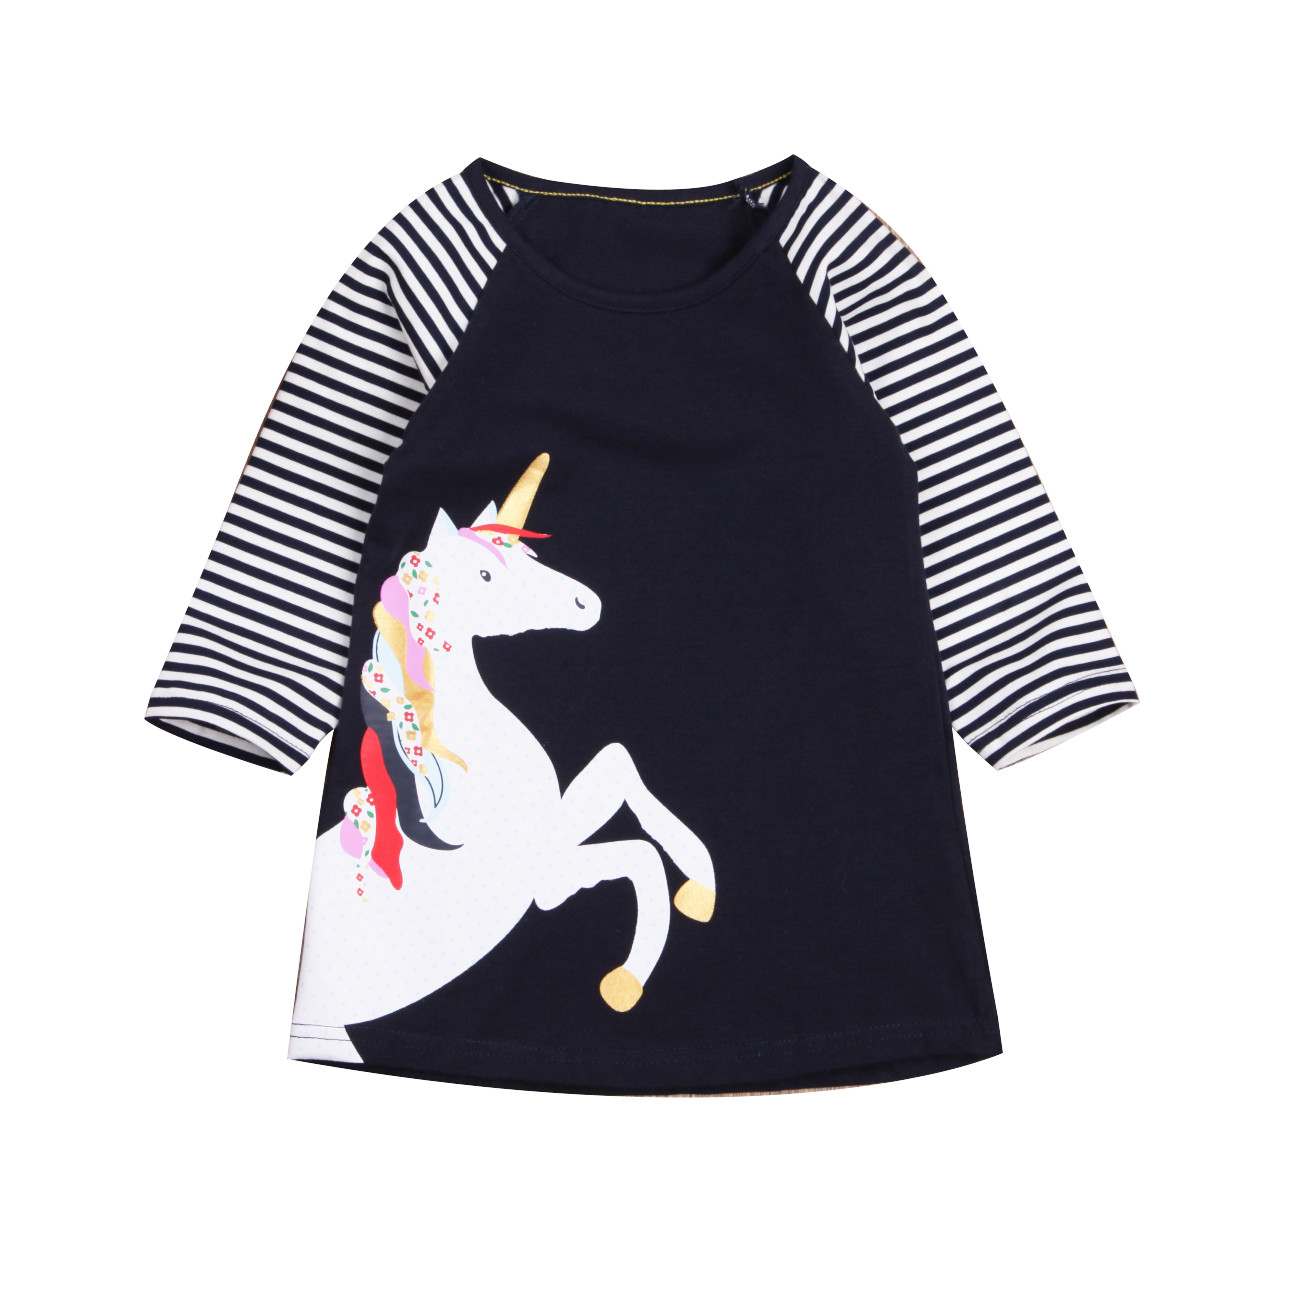 Princess Kids Baby Girls Dress Cotton Cute Mini Long Sleeve Casual Striped Party Casual Dresses Girl round neck ladies sweater dresses cotton knitted 2018 summer womens mini dresses long sleeve party dress robe longue femme q1